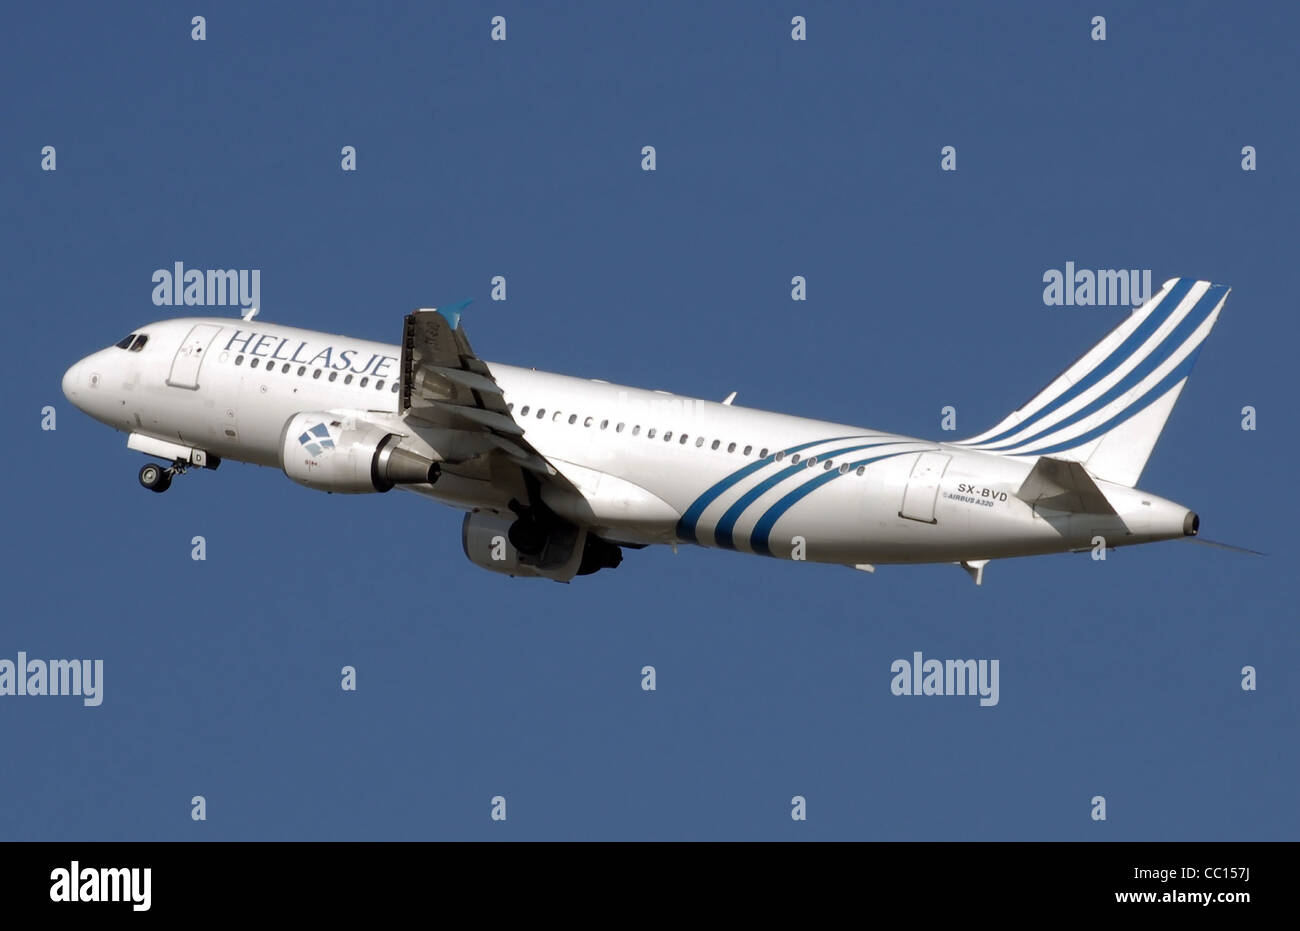 Hellas Jet Airbus A320-200 (SX-BVD) taking off from London Heathrow Airport, England. - Stock Image